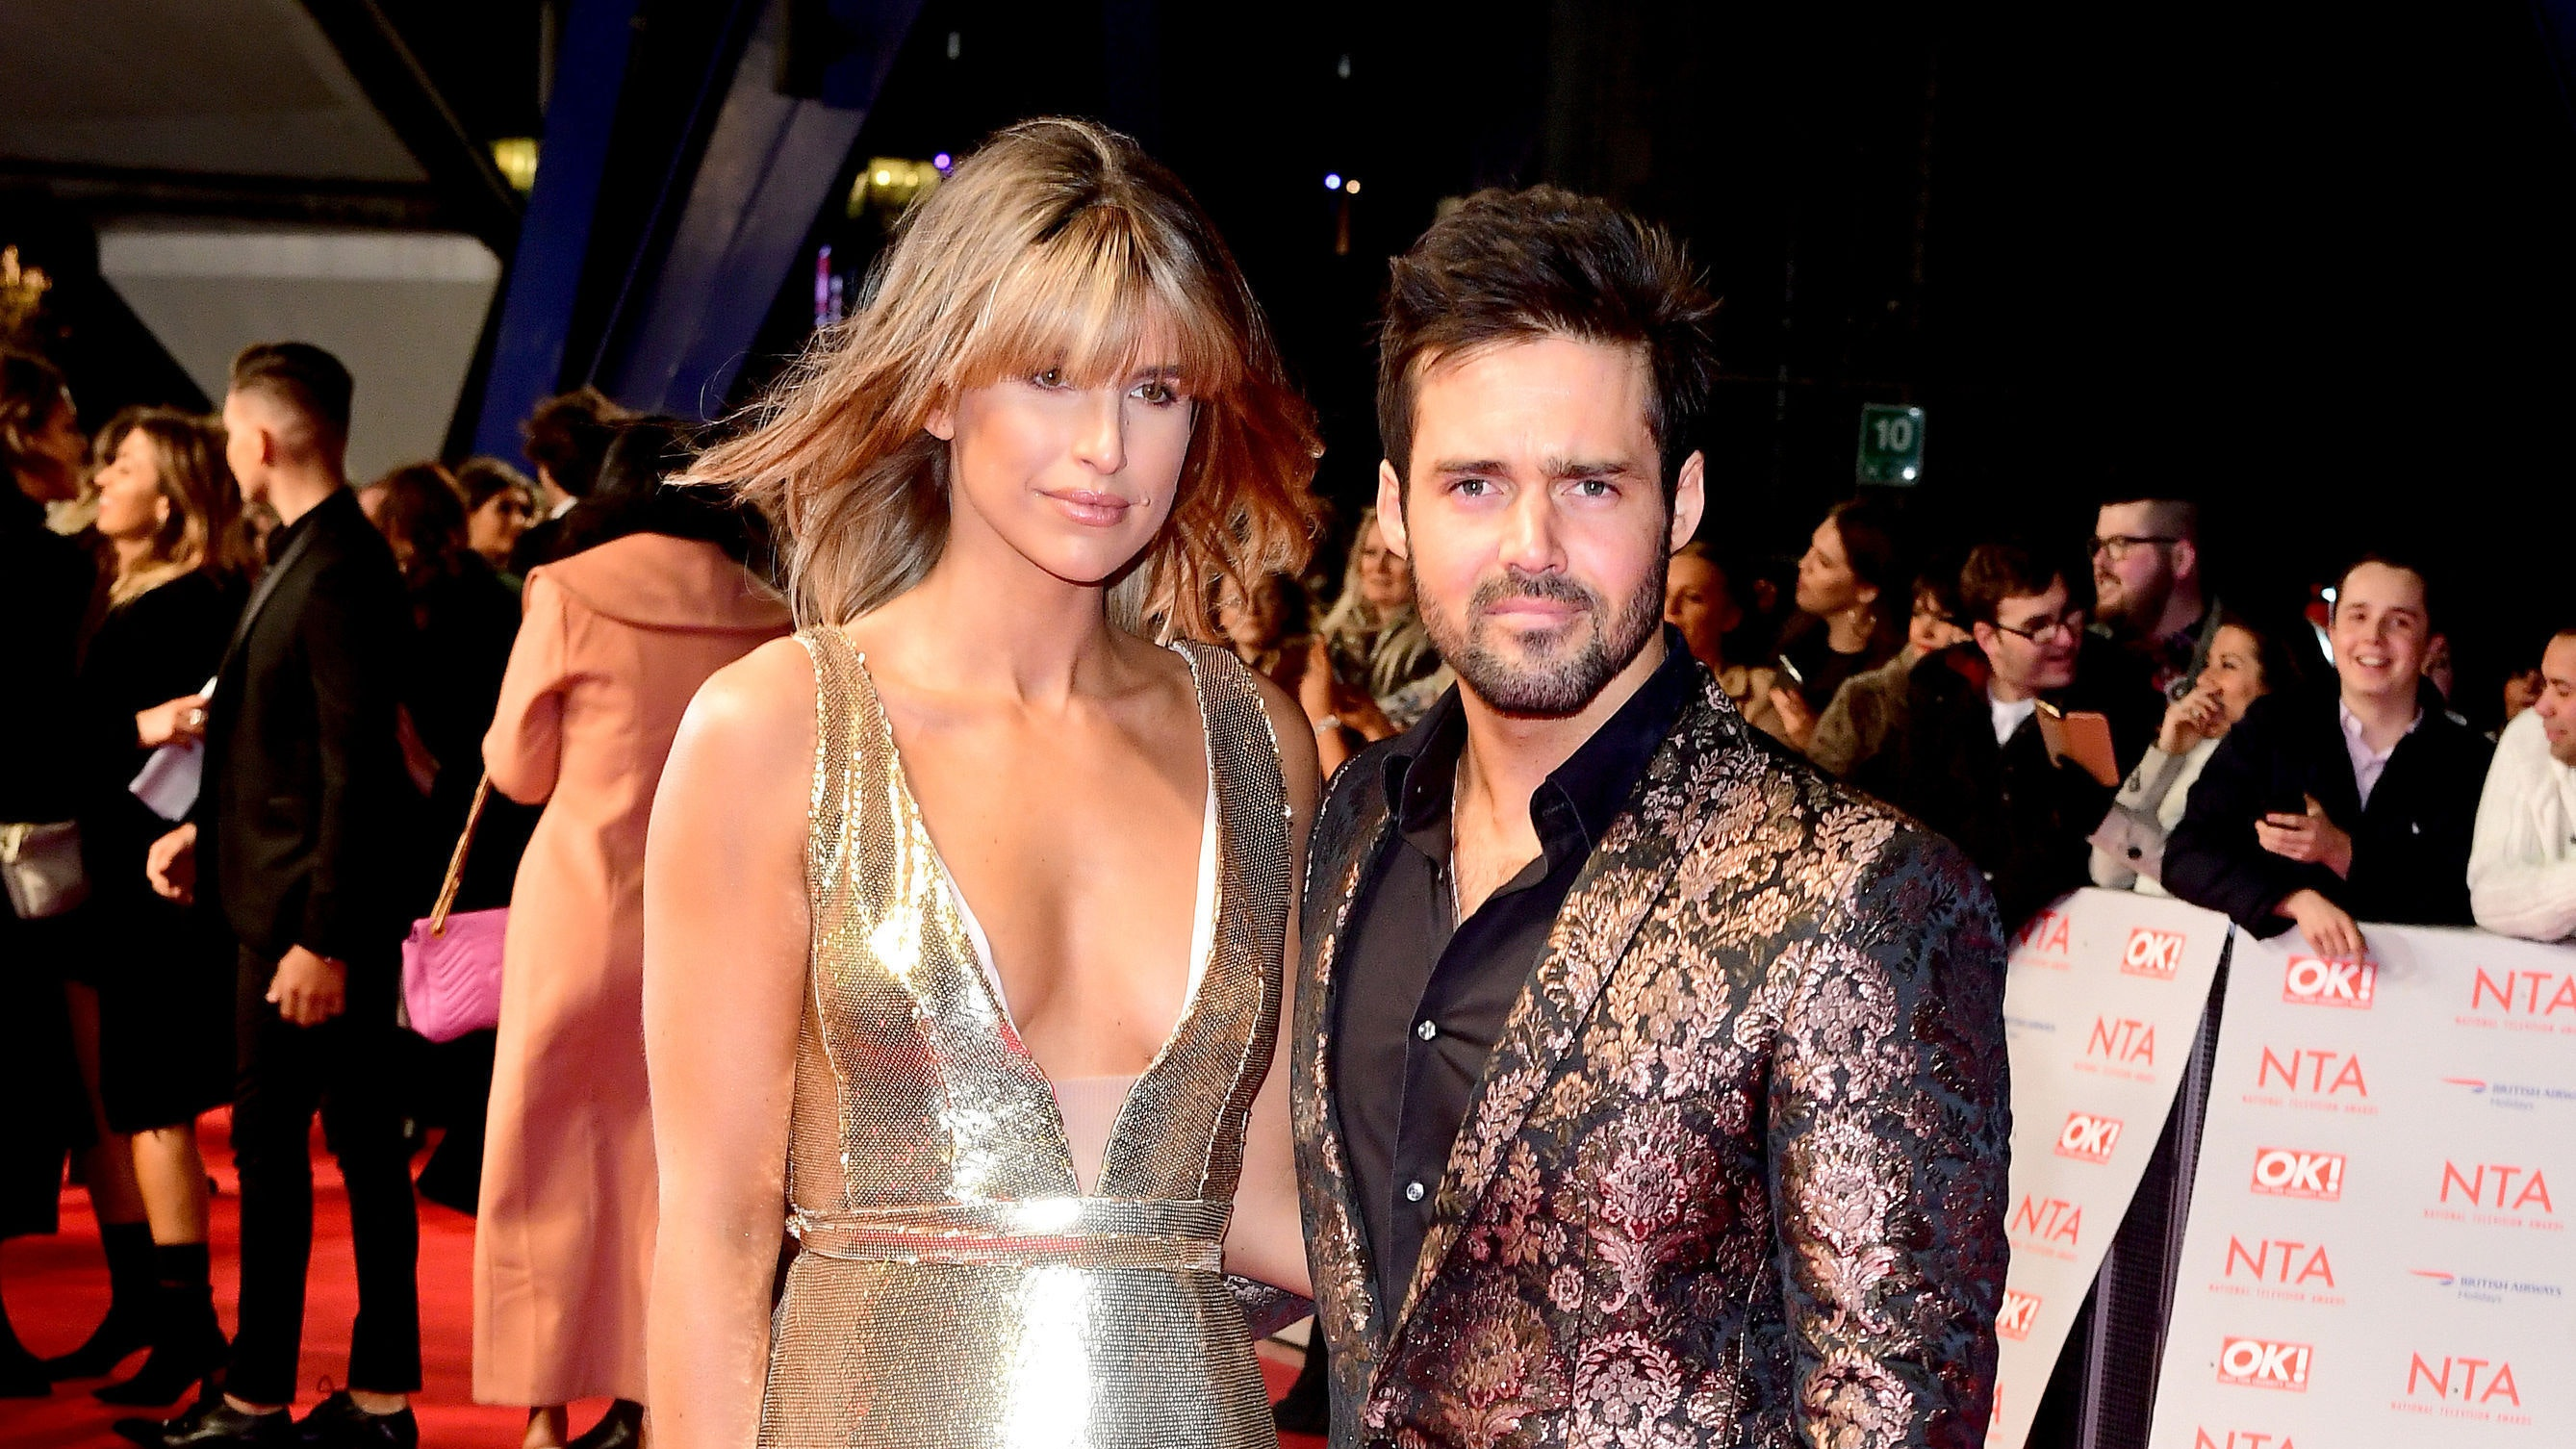 Vogue Williams and Spencer Matthews reveal baby news